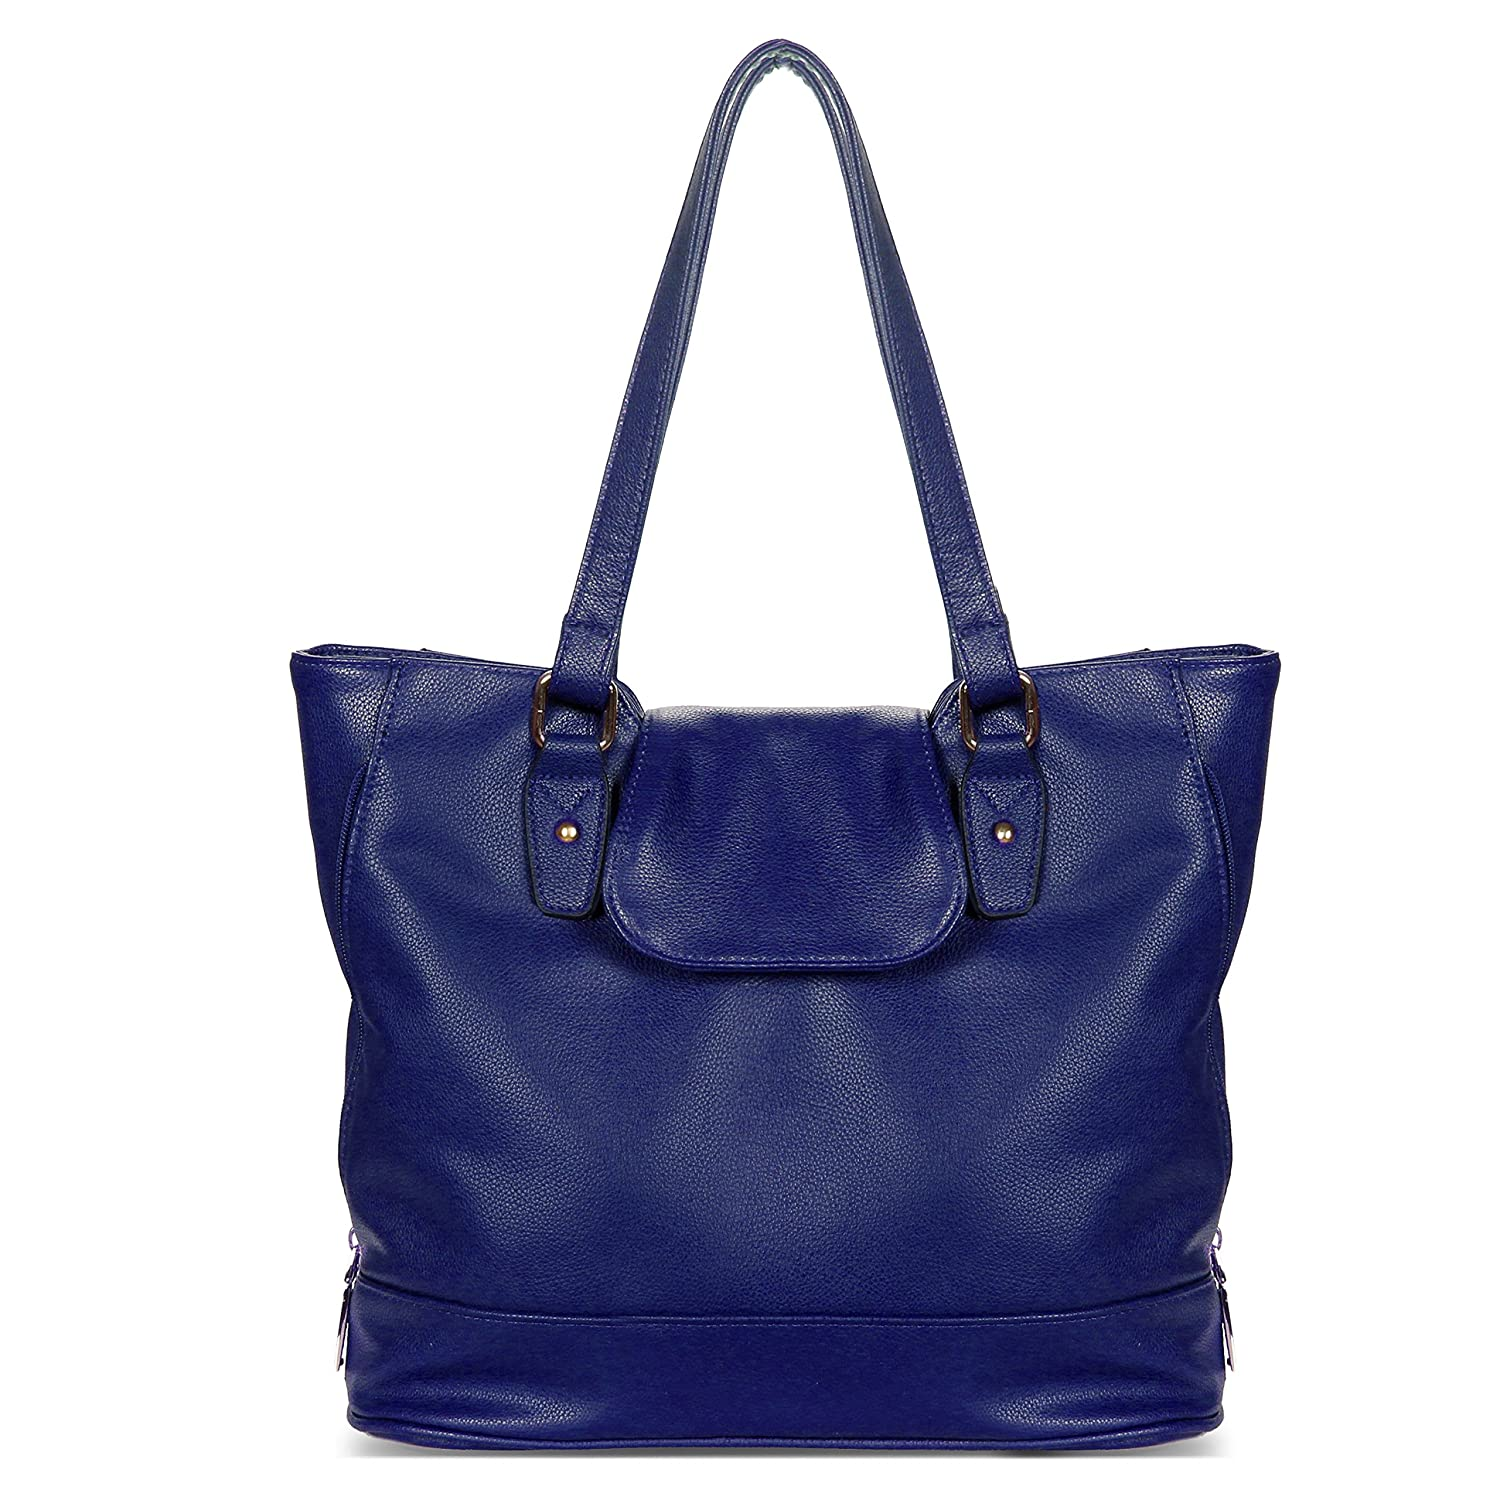 3bdda71f7240 Amazon.com: YOLANDO Handbags For Women Large Vegan Leather Top Flap Tote Bag  T0006 (Blue): Shoes